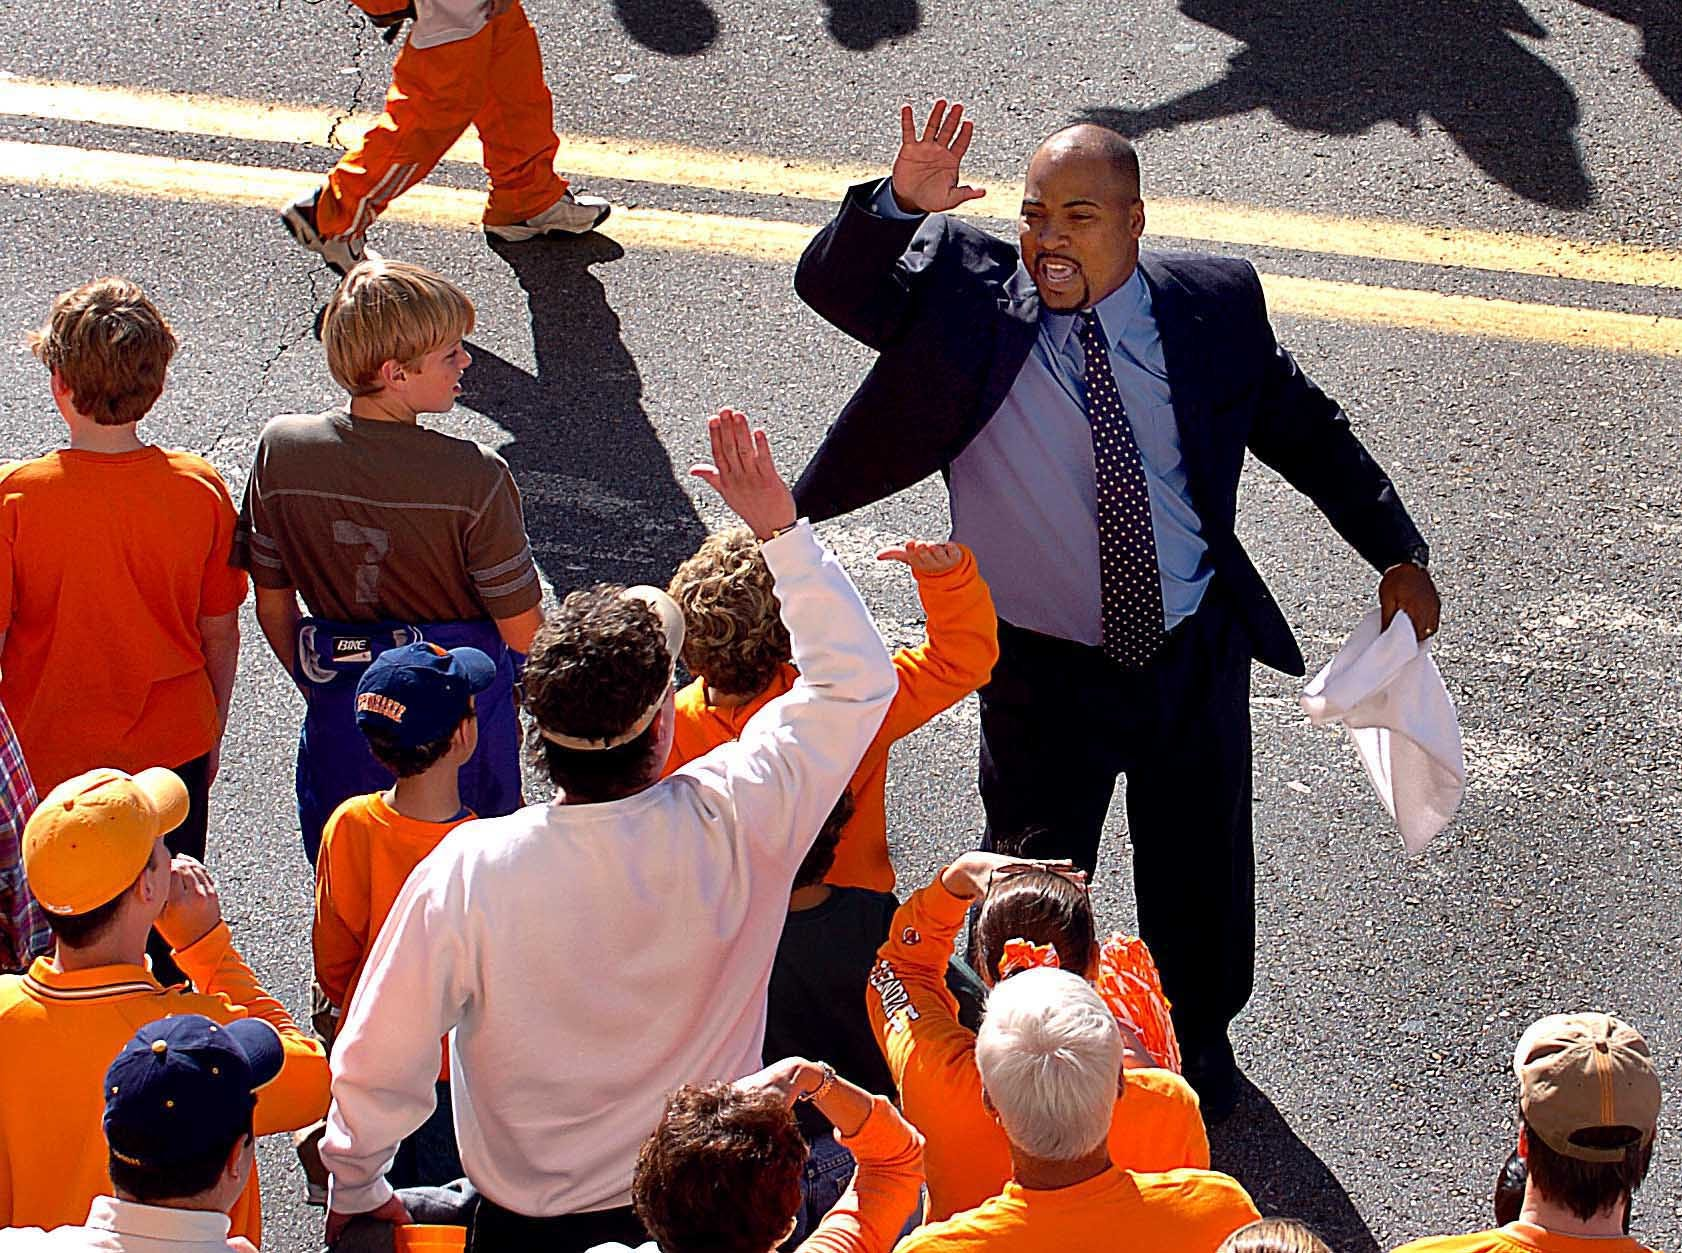 gameday43.MP#2442 - 1:23:09 Saturday - Assistant football coach Trooper Taylor gives enthusiastic high-fives to fans as he walks along with his players in the Vol Walk.  11/6/2004 (Trooper_6769) MICHAEL PATRICK/NEWS SENTINEL STAFF